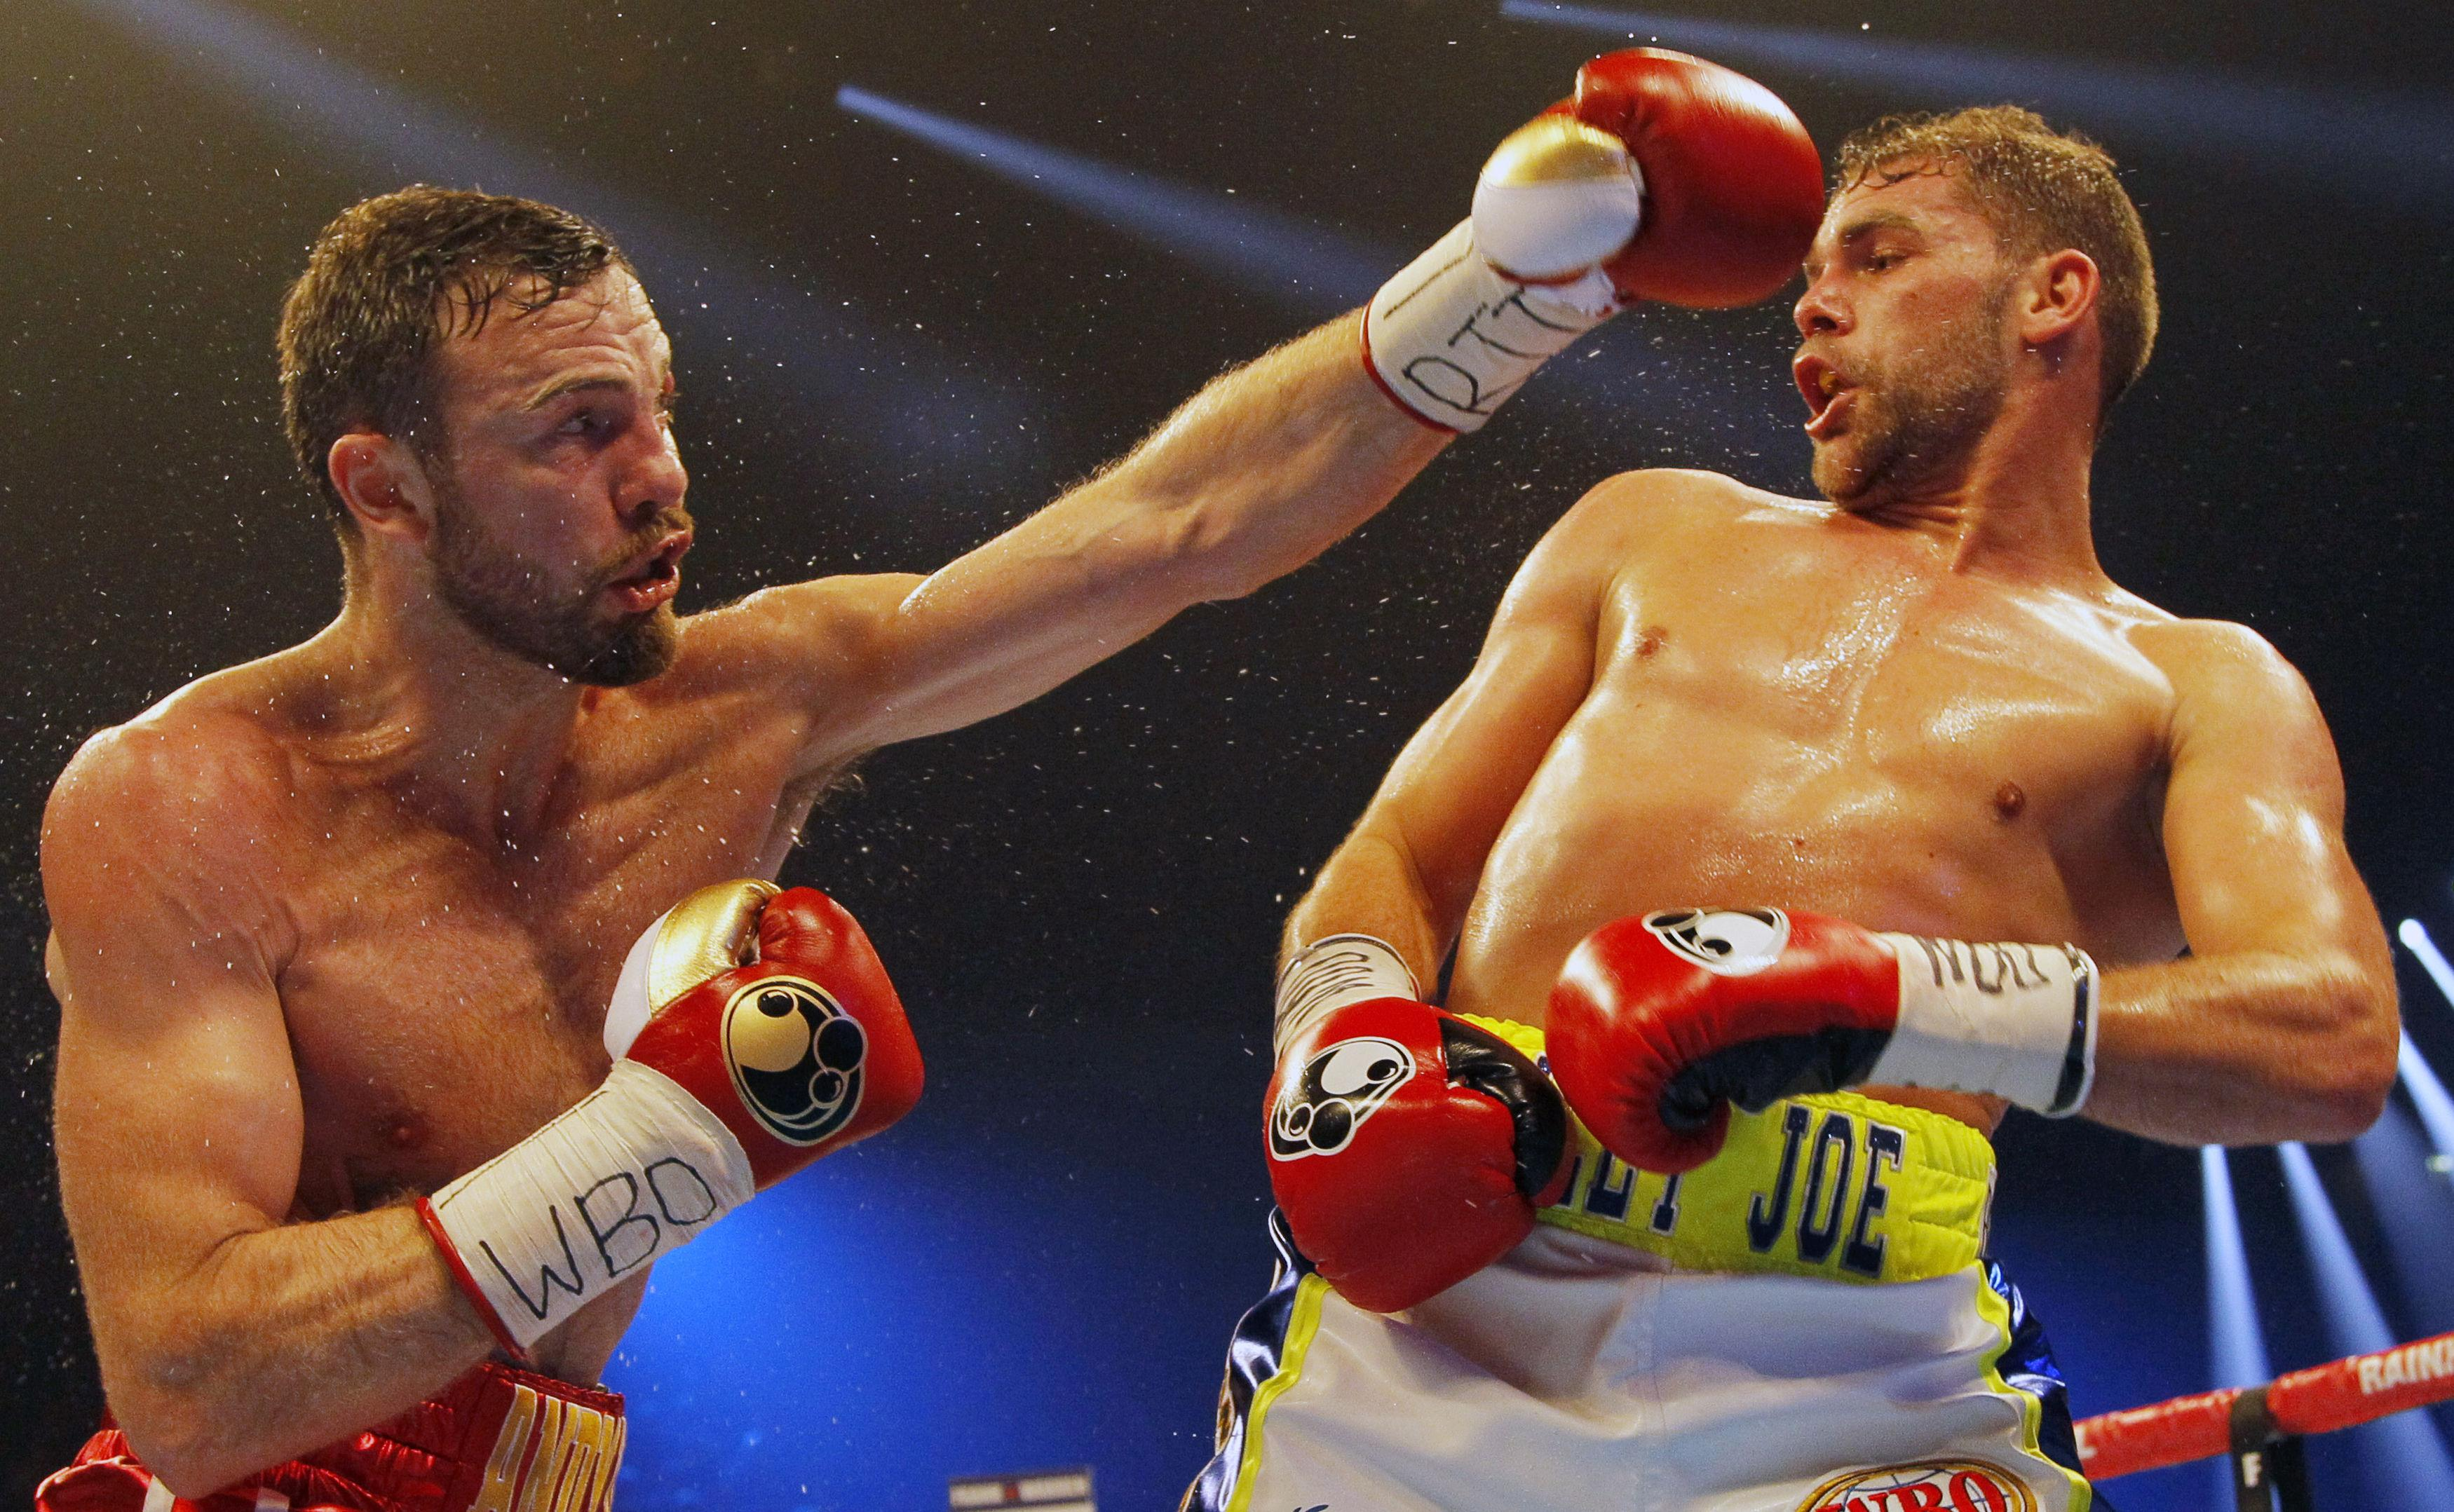 The Andy Lee fight with Billy Joe Saunders was a classic